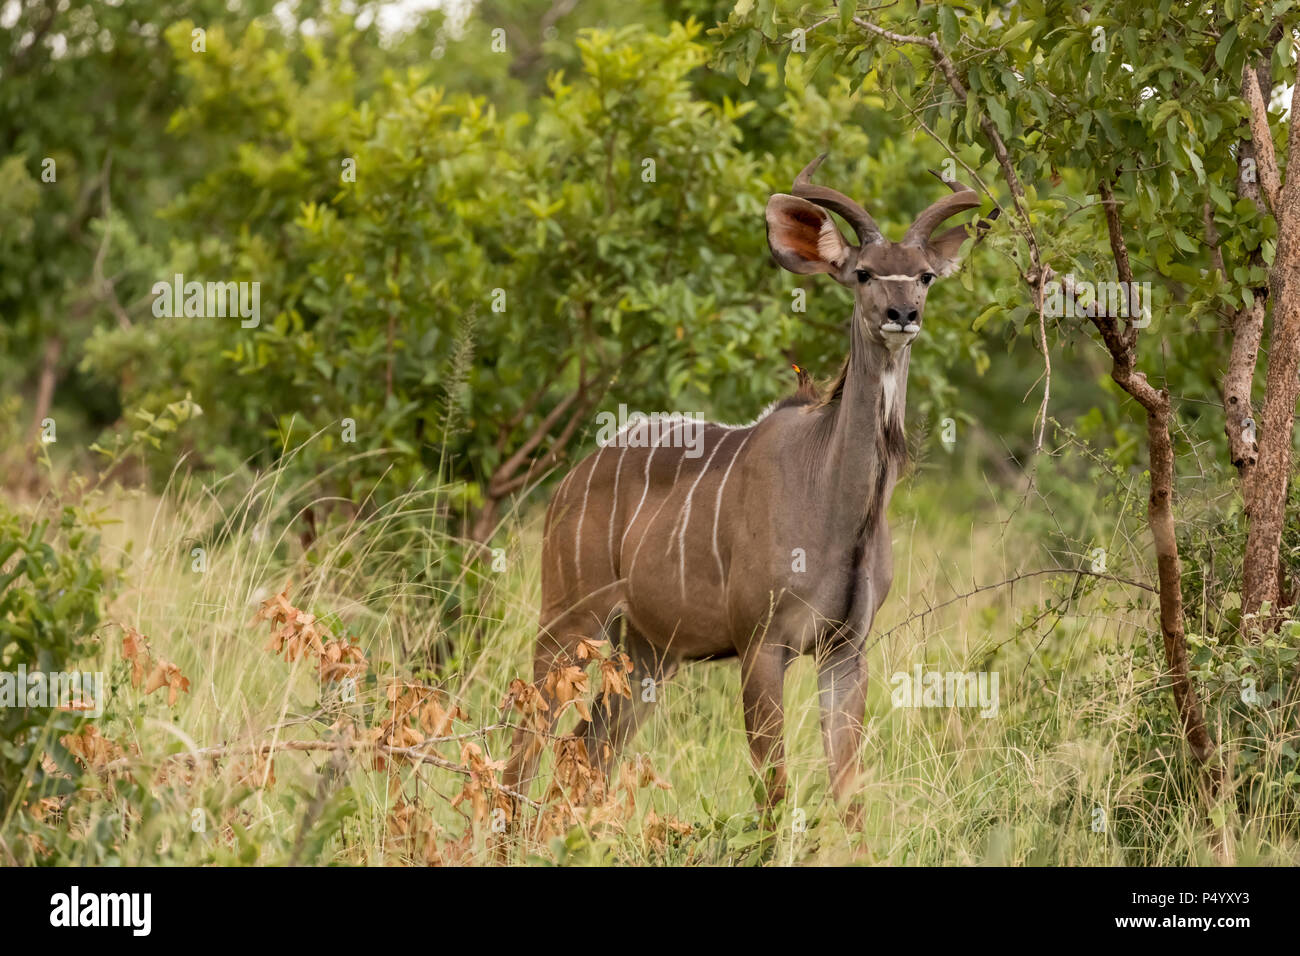 Lesser Kudu (Tragelaphus imberbis) male on the savannah in Tarangire National Park, Tanzania - Stock Image